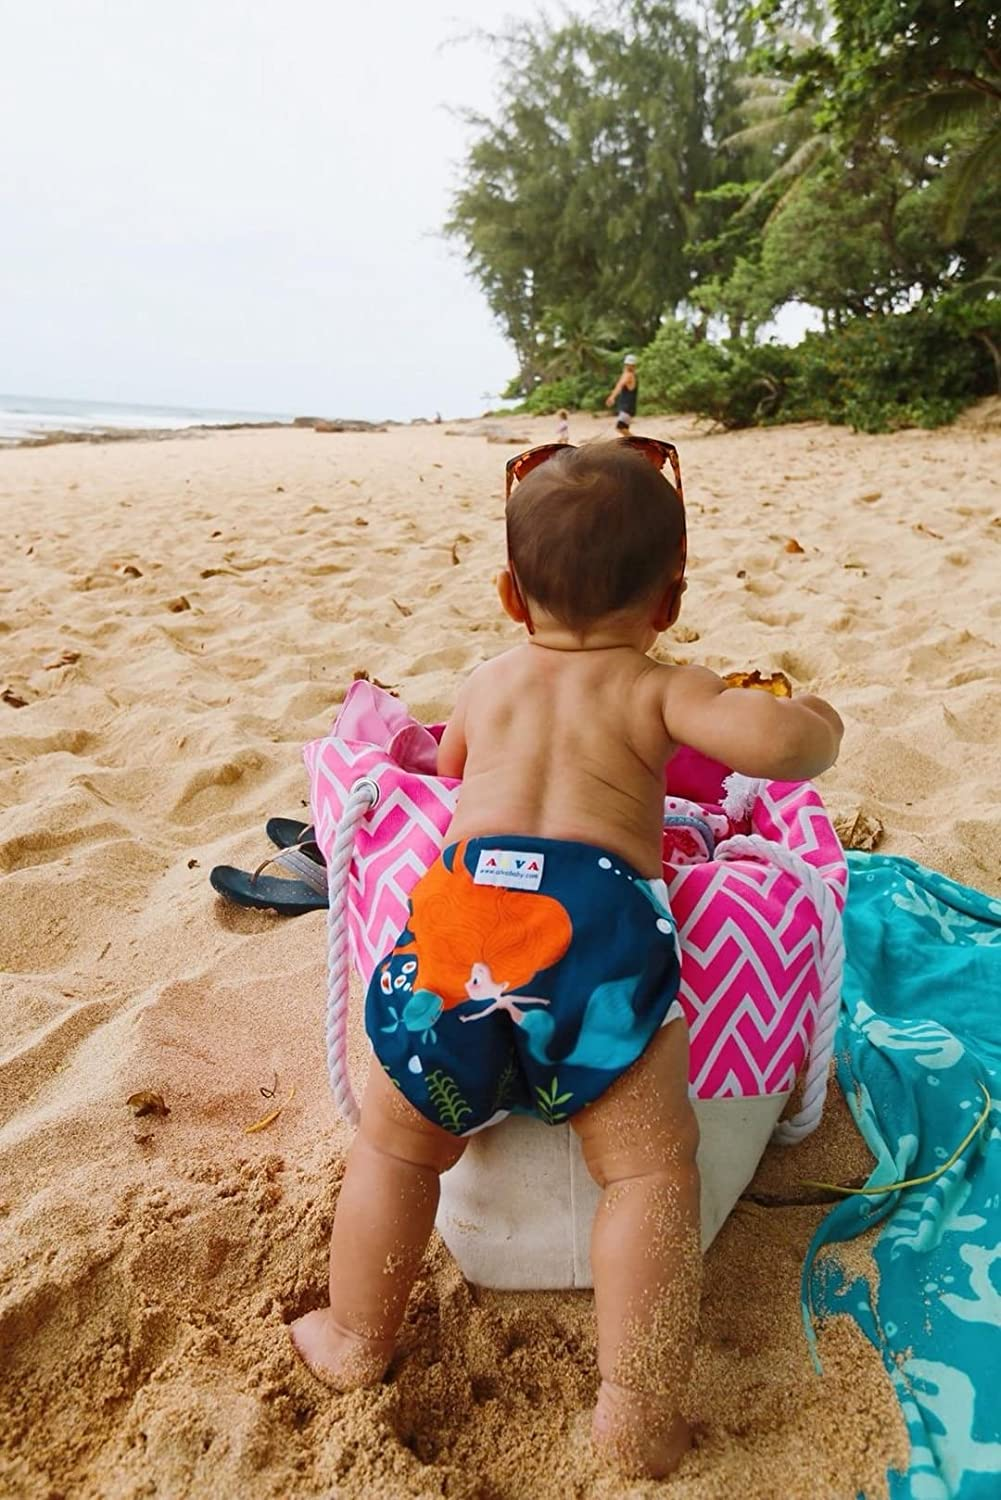 ALVABABY Swim Diapers for 0-3 Years Large Size 2pcs Reuseable Washable /& Adjustable for Swimming Lesson /& Baby Shower Gifts